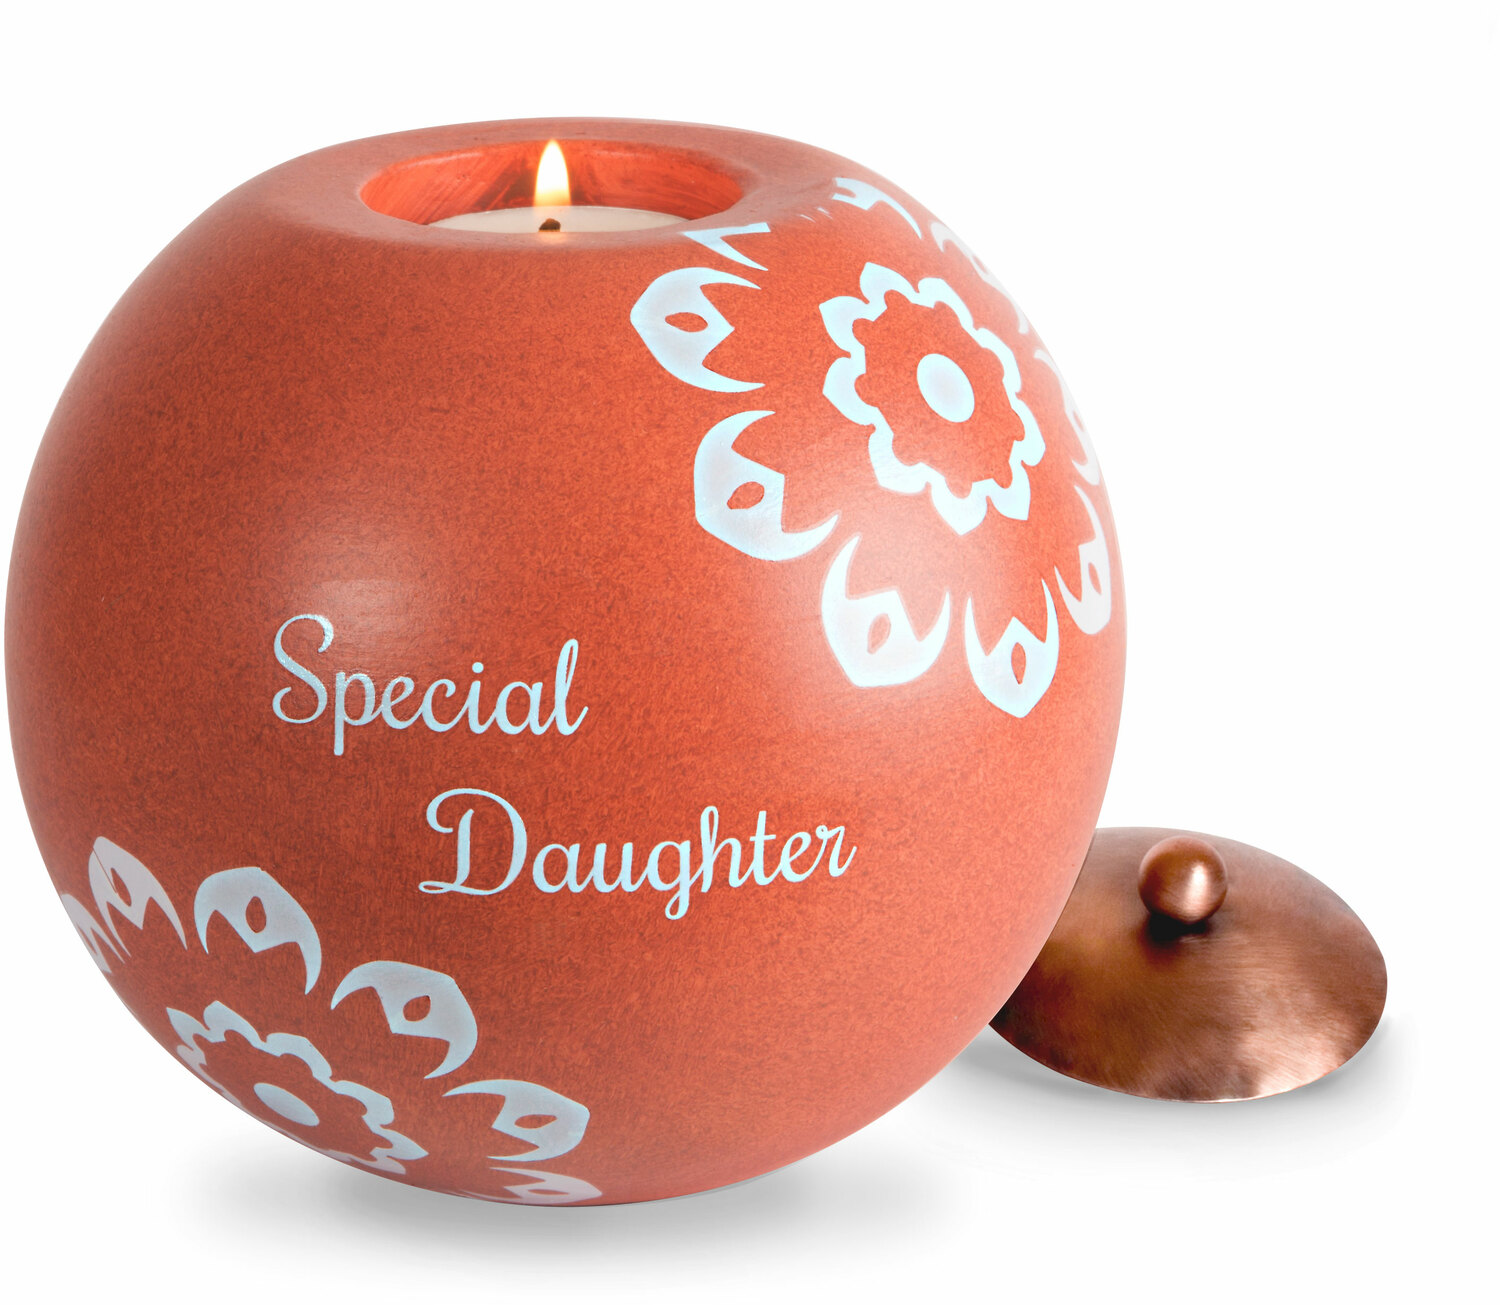 "Daughter by Cinnamon Swirl - Daughter - 5"" Round Candle Holder"